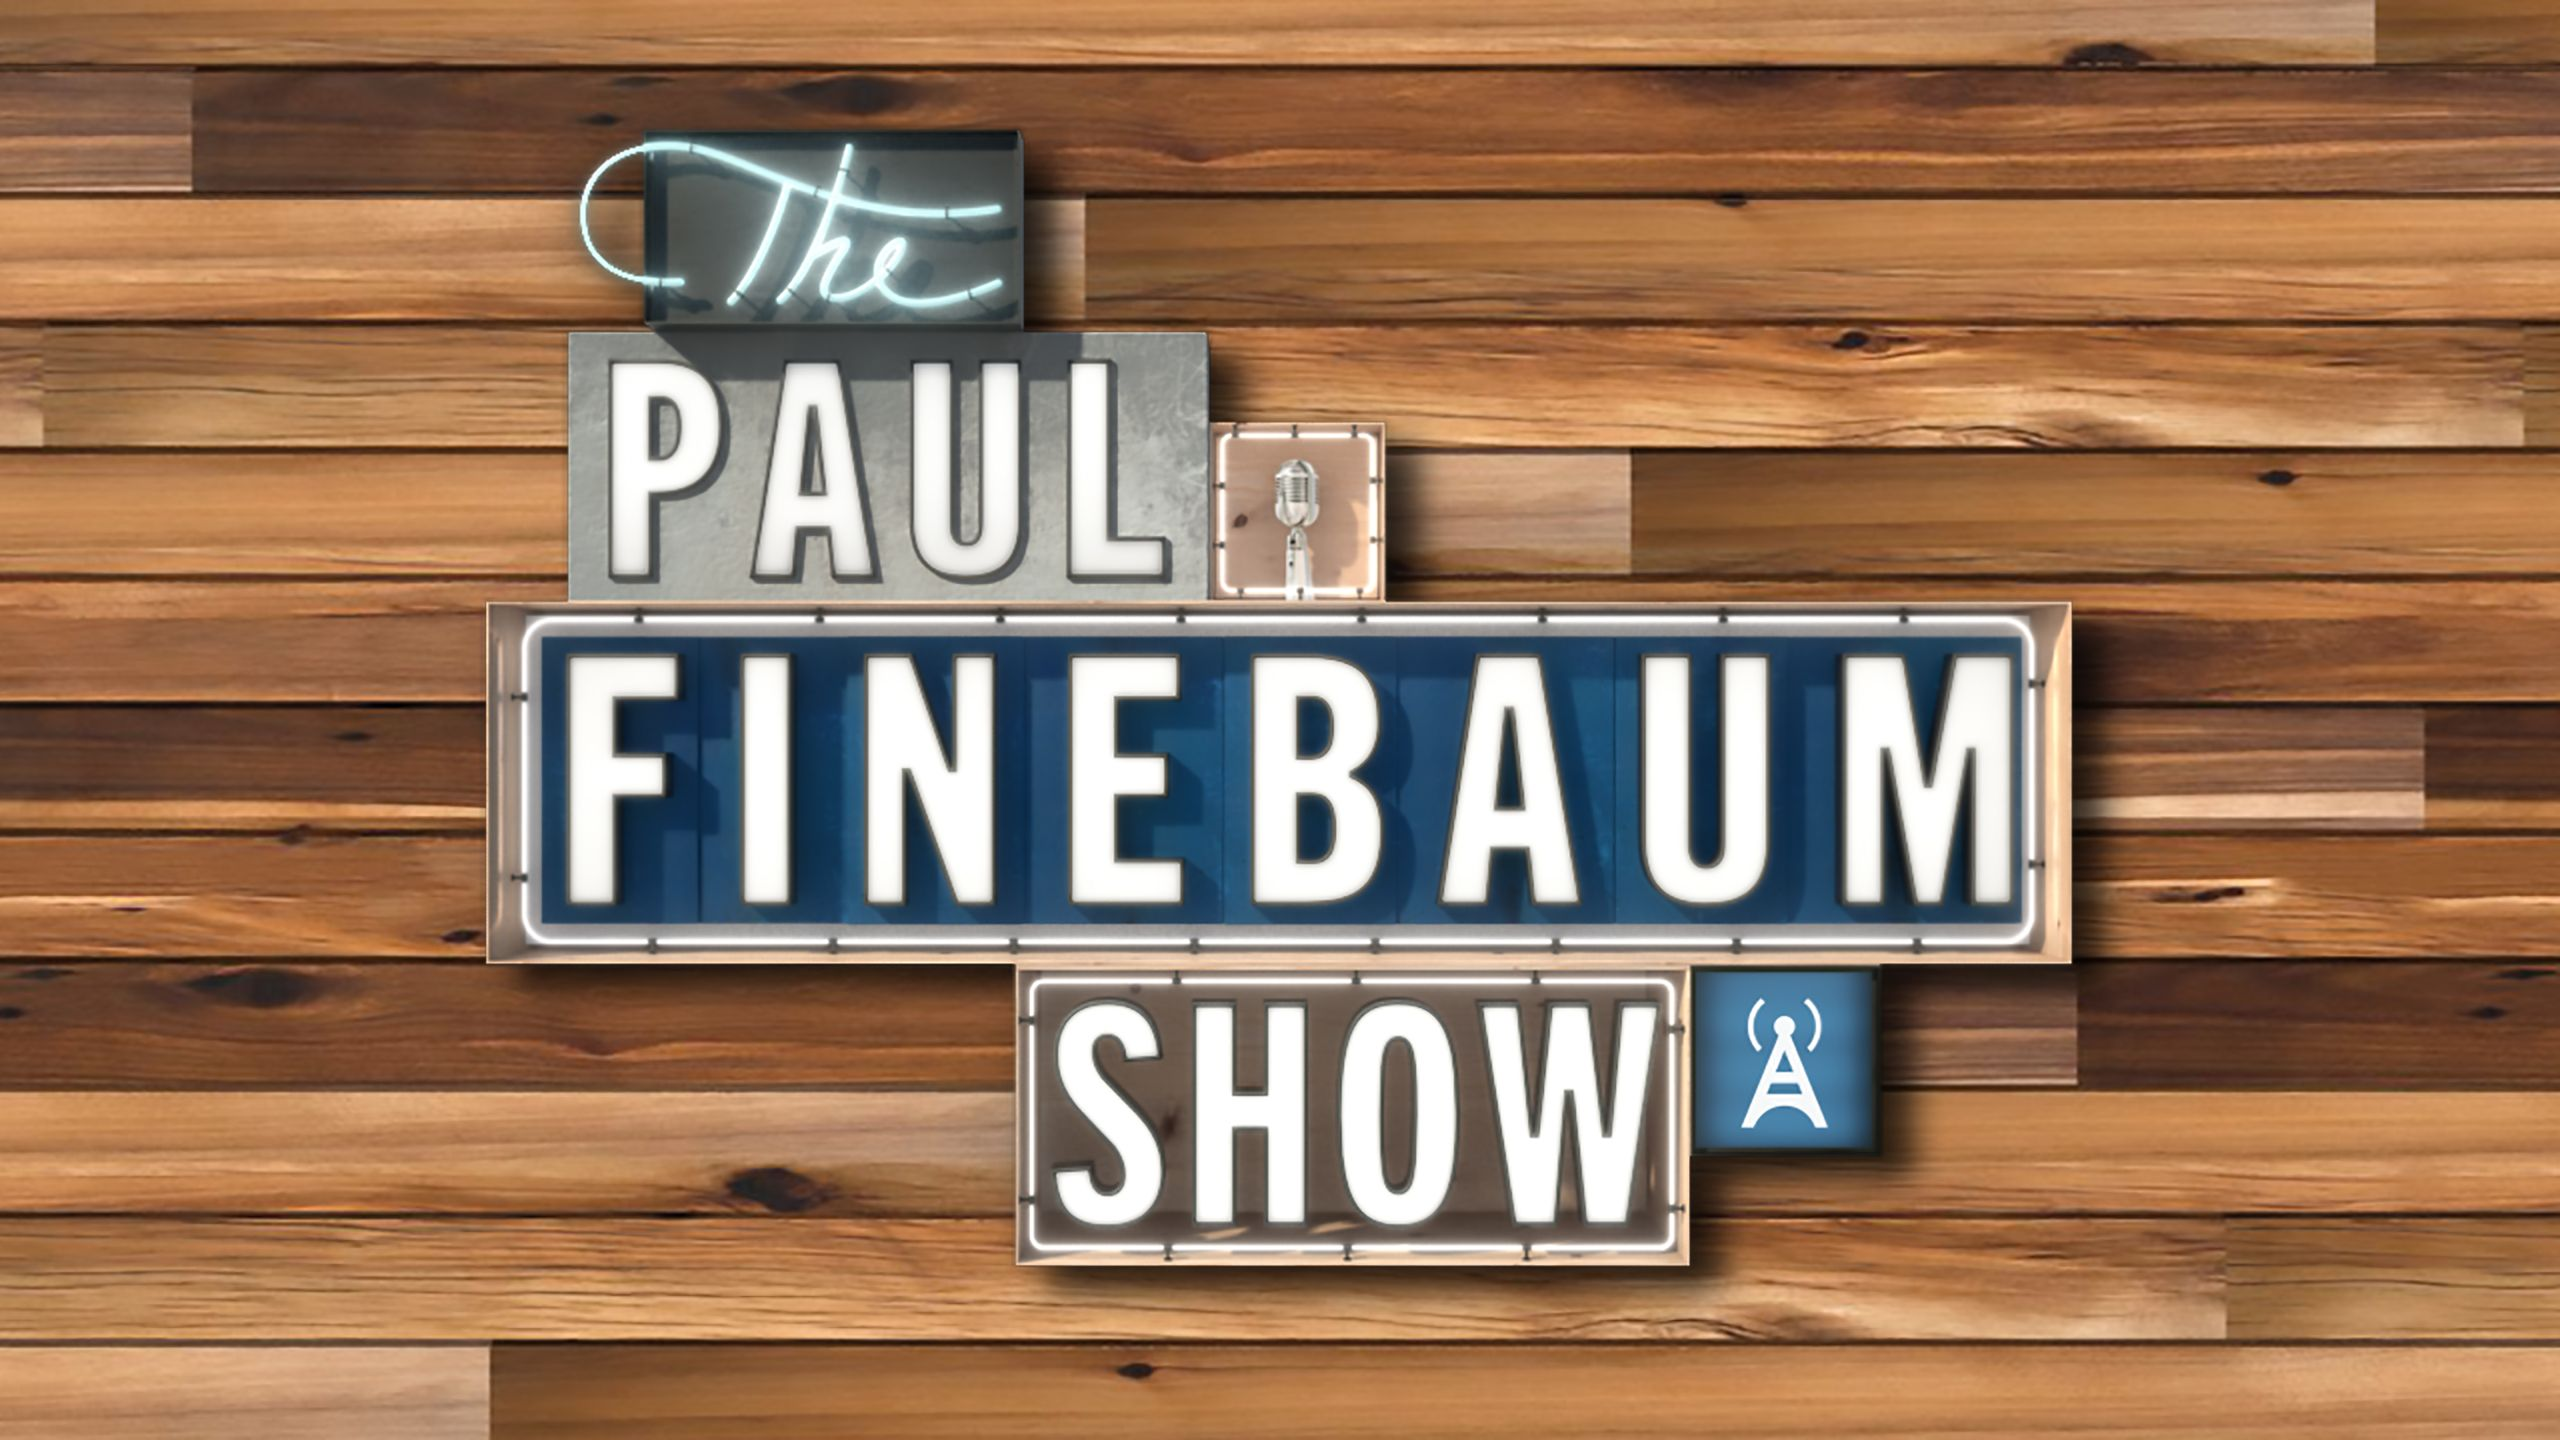 The Best of Paul Finebaum Show